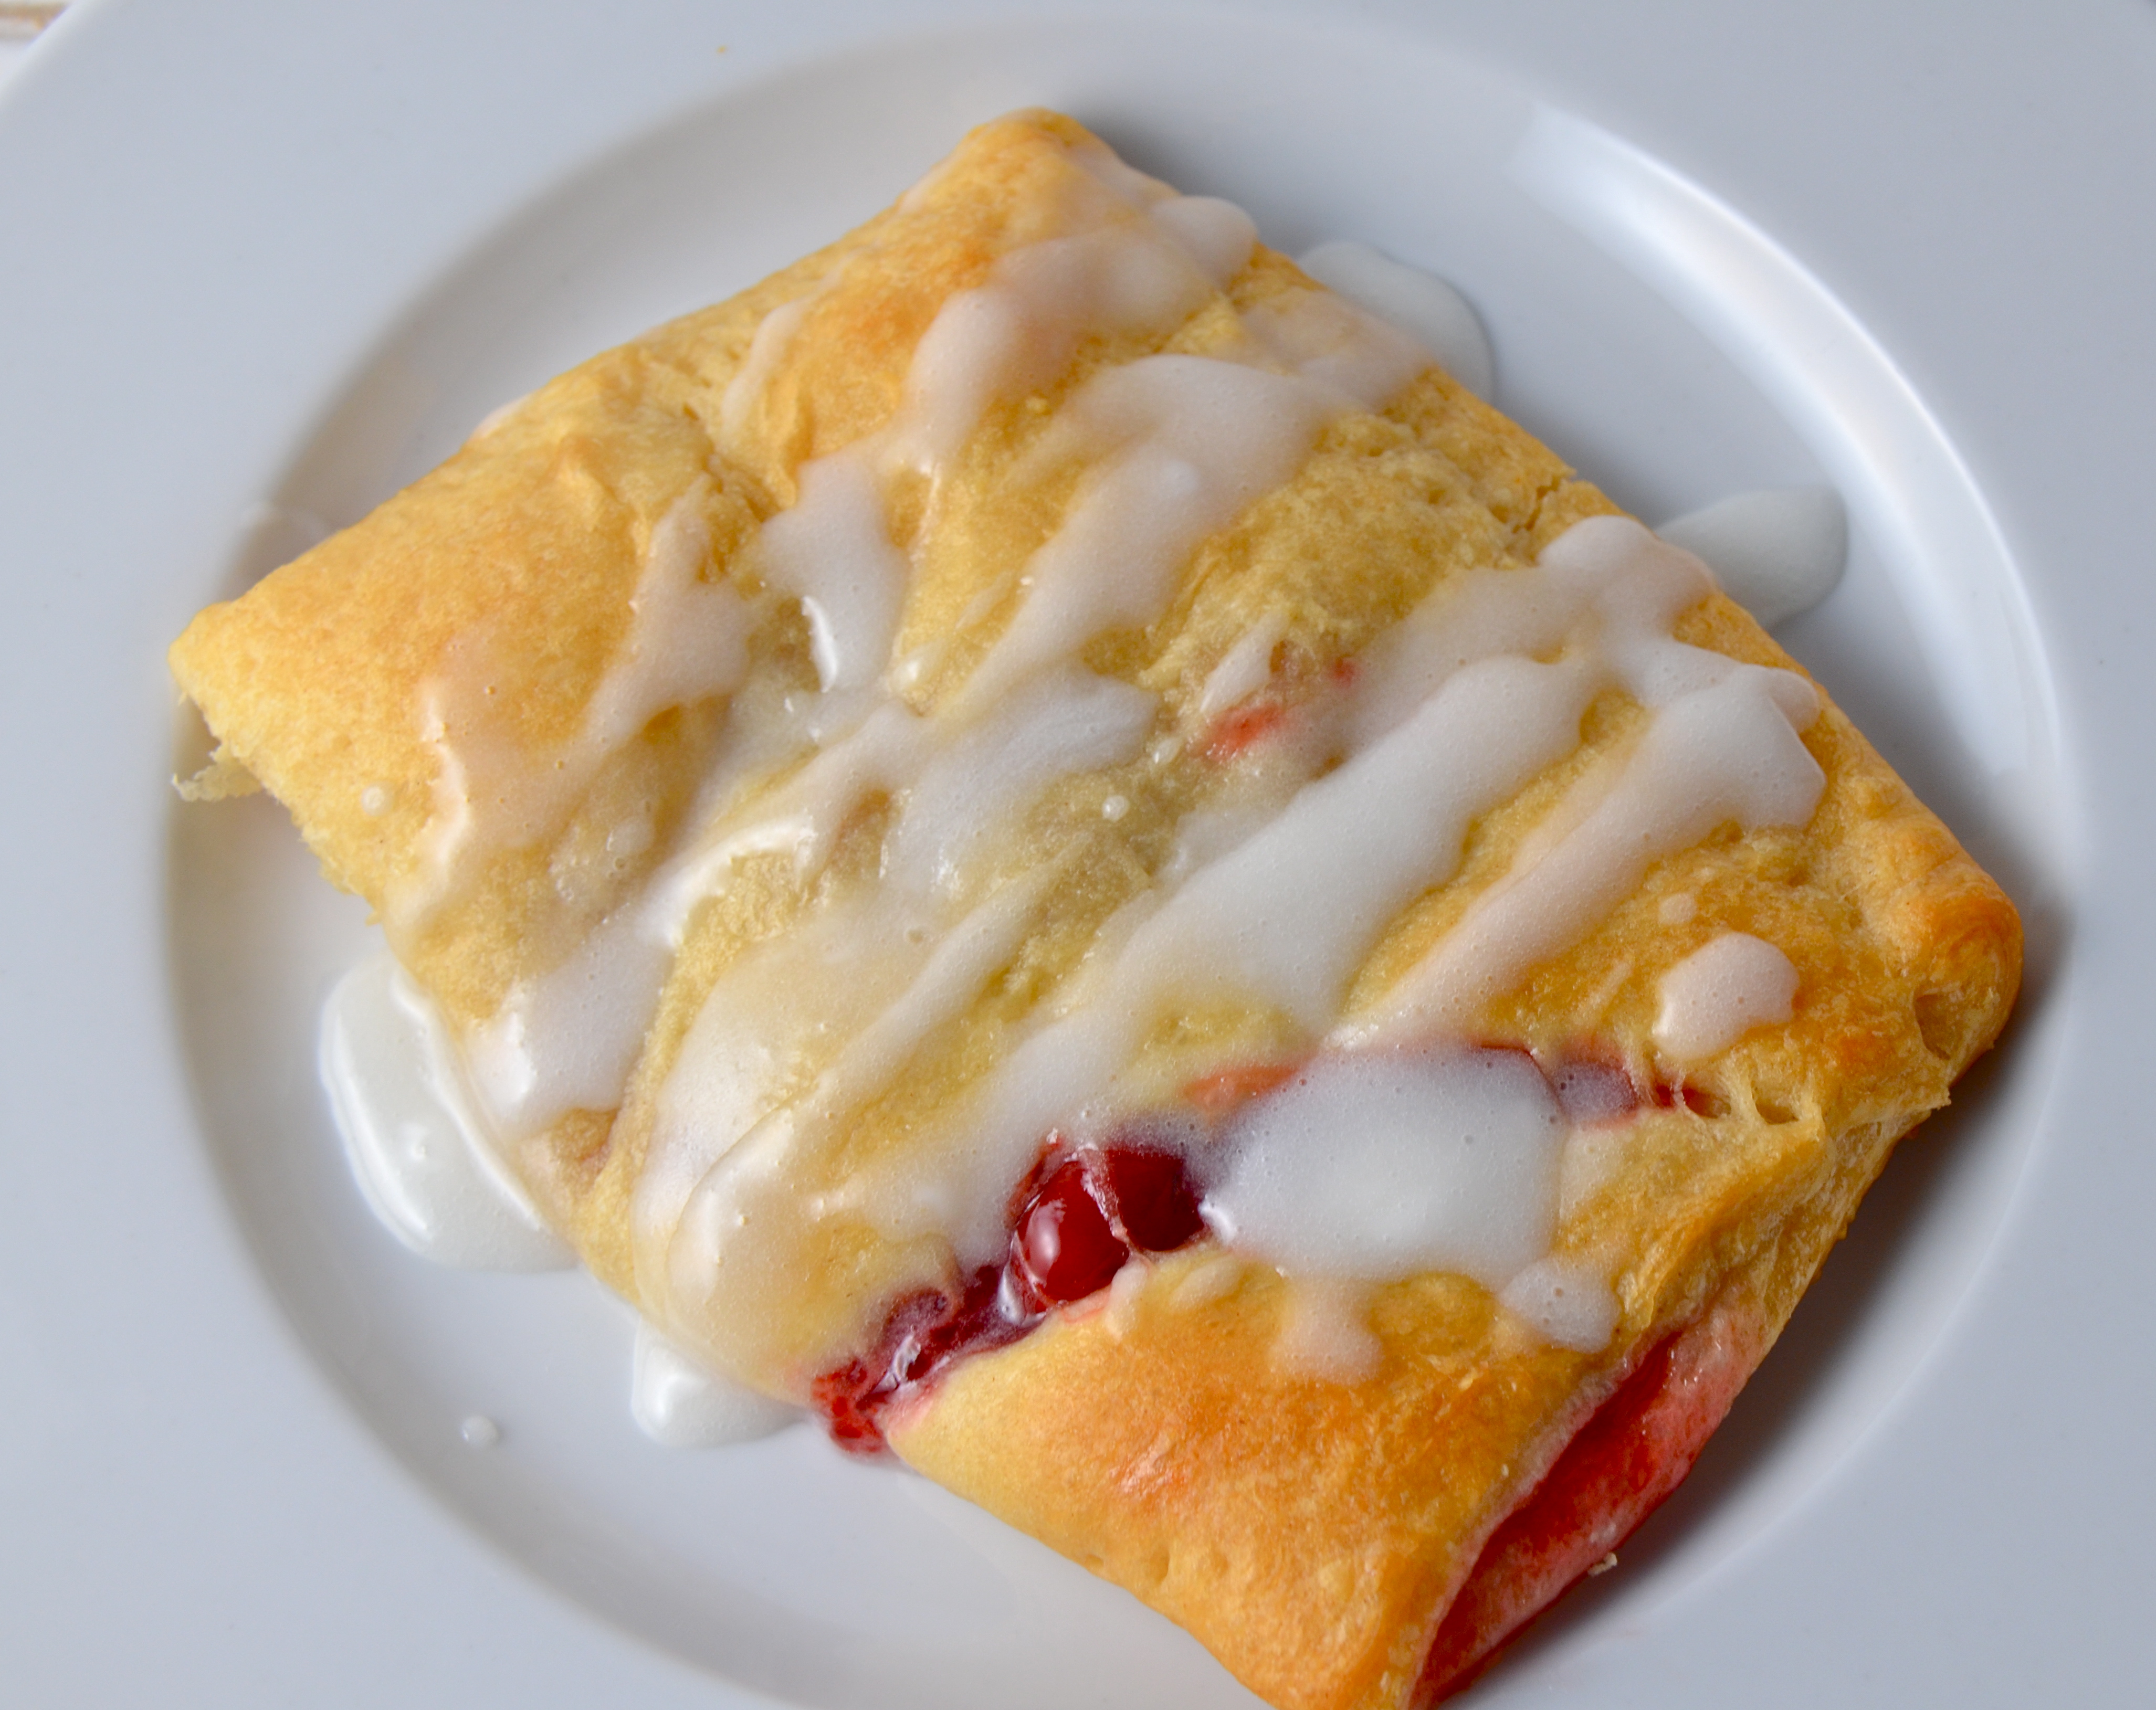 ... turnovers recipe of the day quick cherry turnovers national cherry